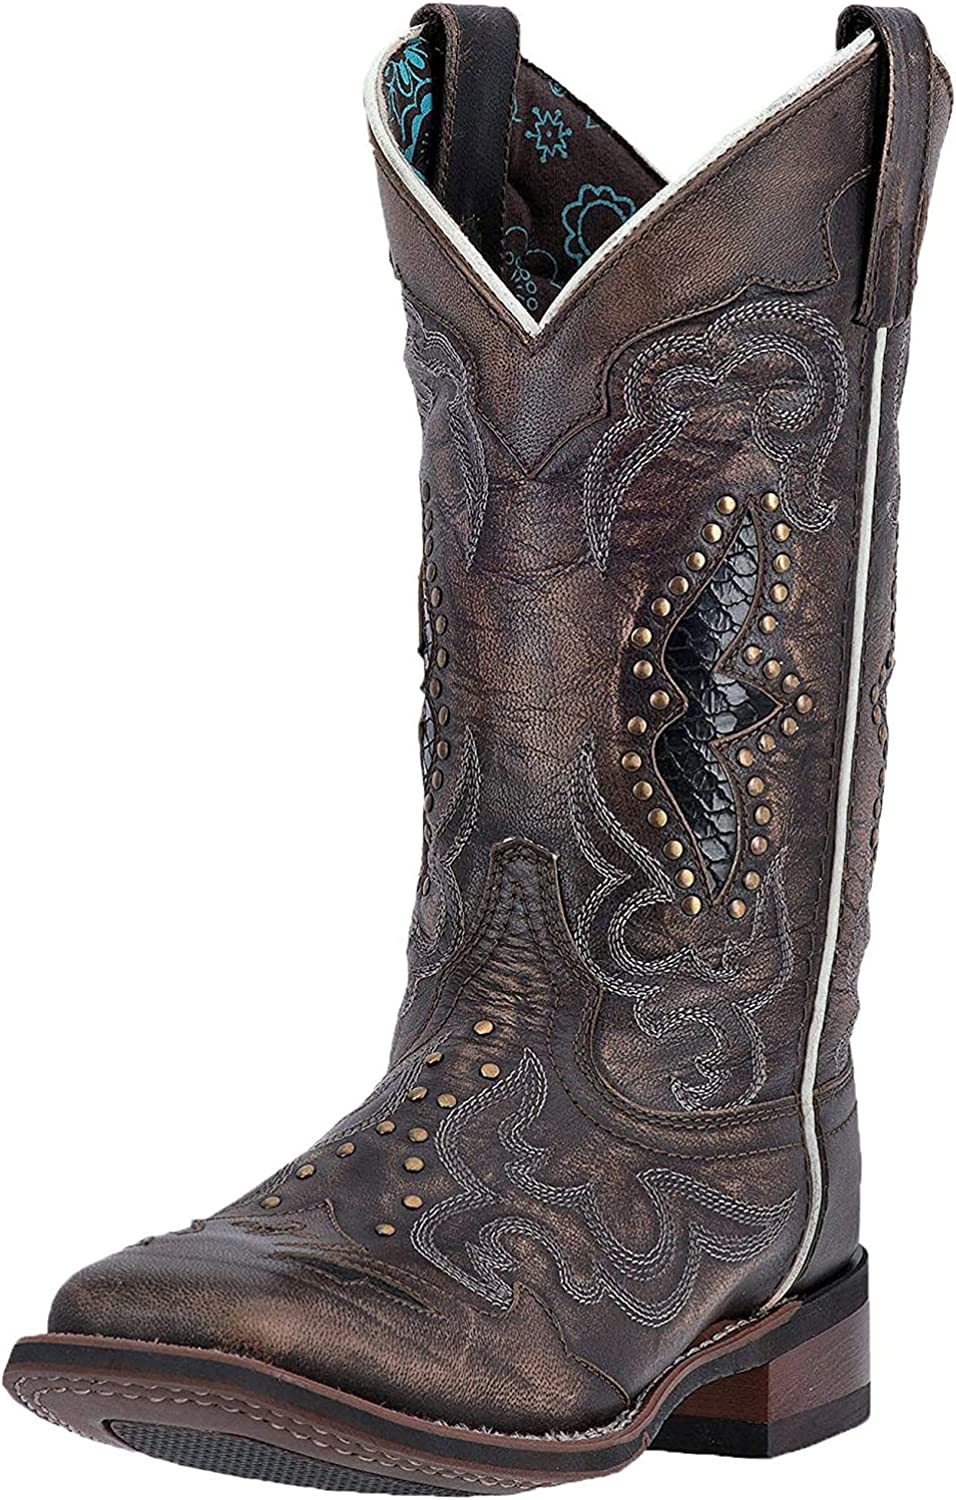 Laredo Womens Spellbound Studded Square Toe Western Cowboy Dress Boots Mid Calf Low Heel 1-2